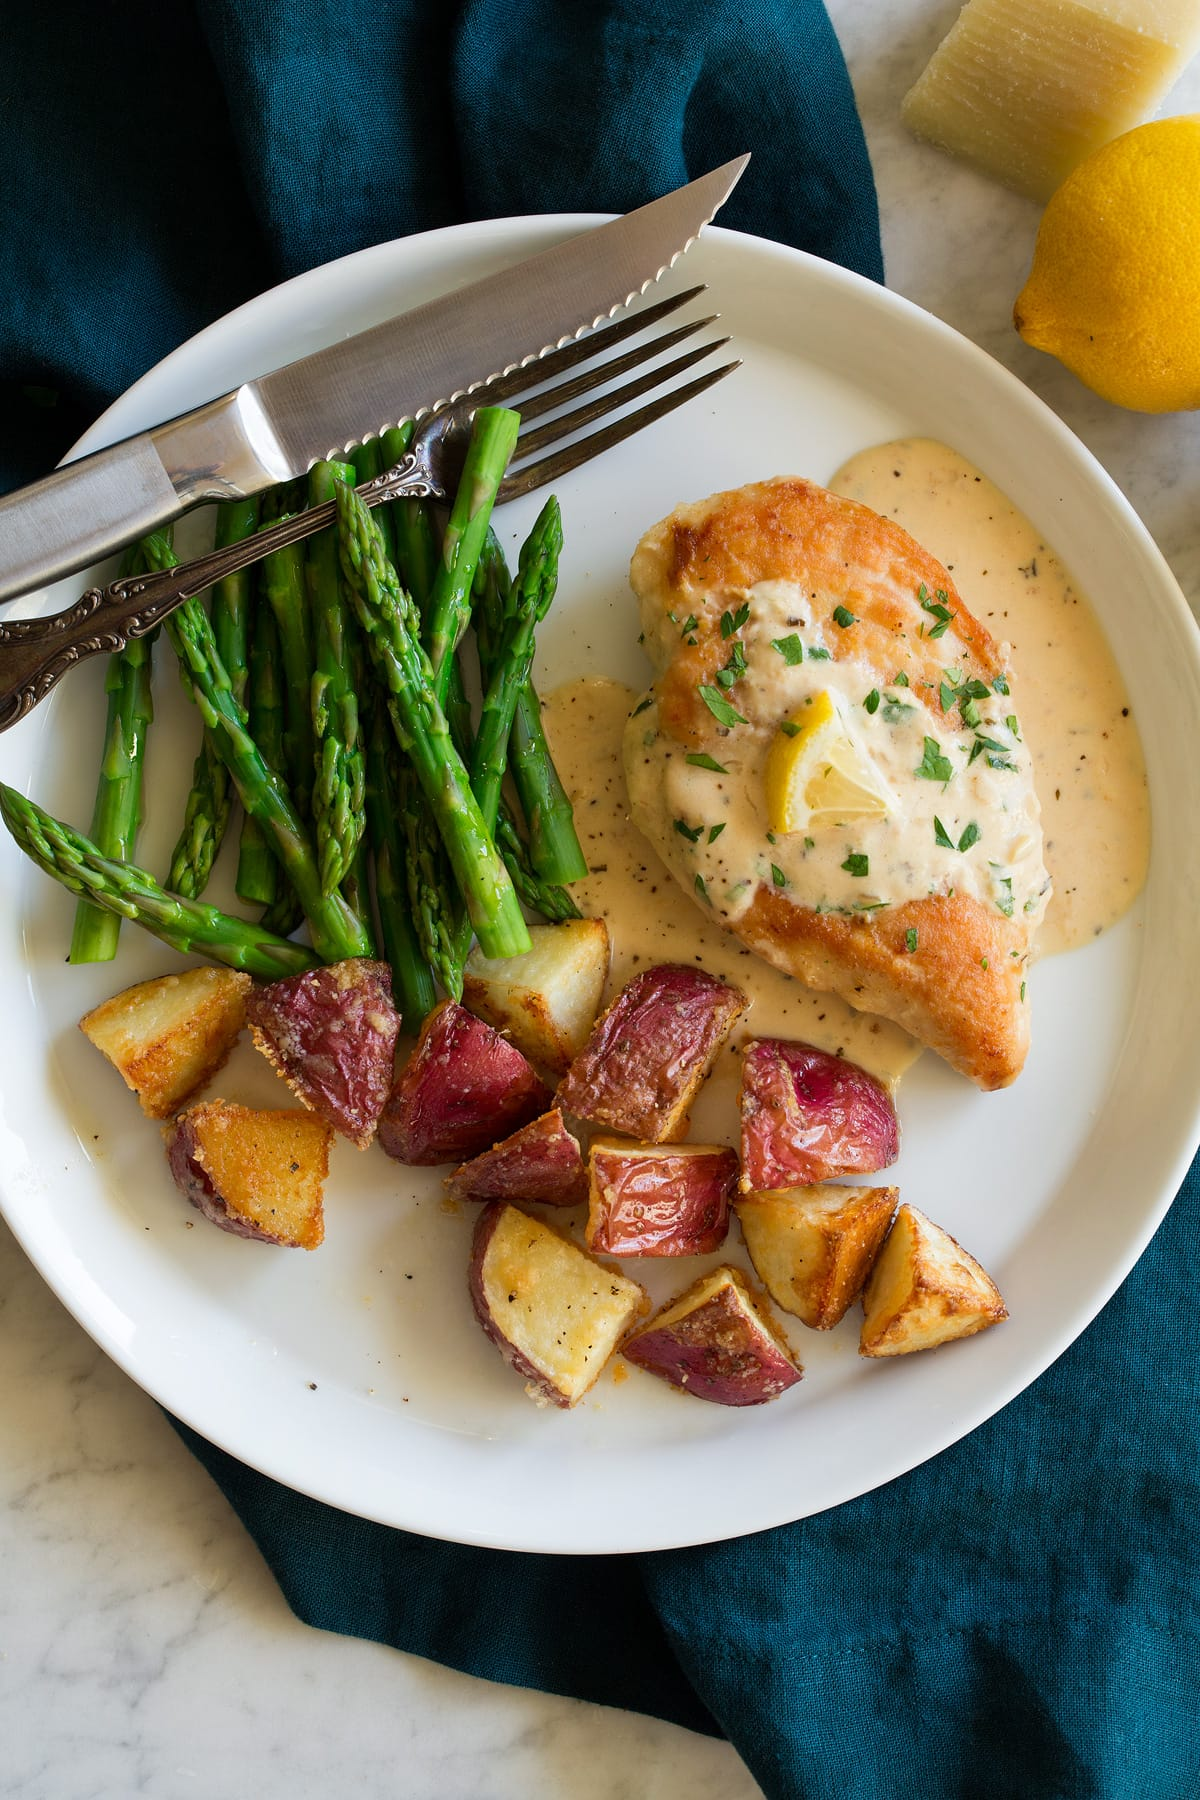 Plate with chicken breast topped with creamy lemon romano sauce and sides of potatoes and asparagus.